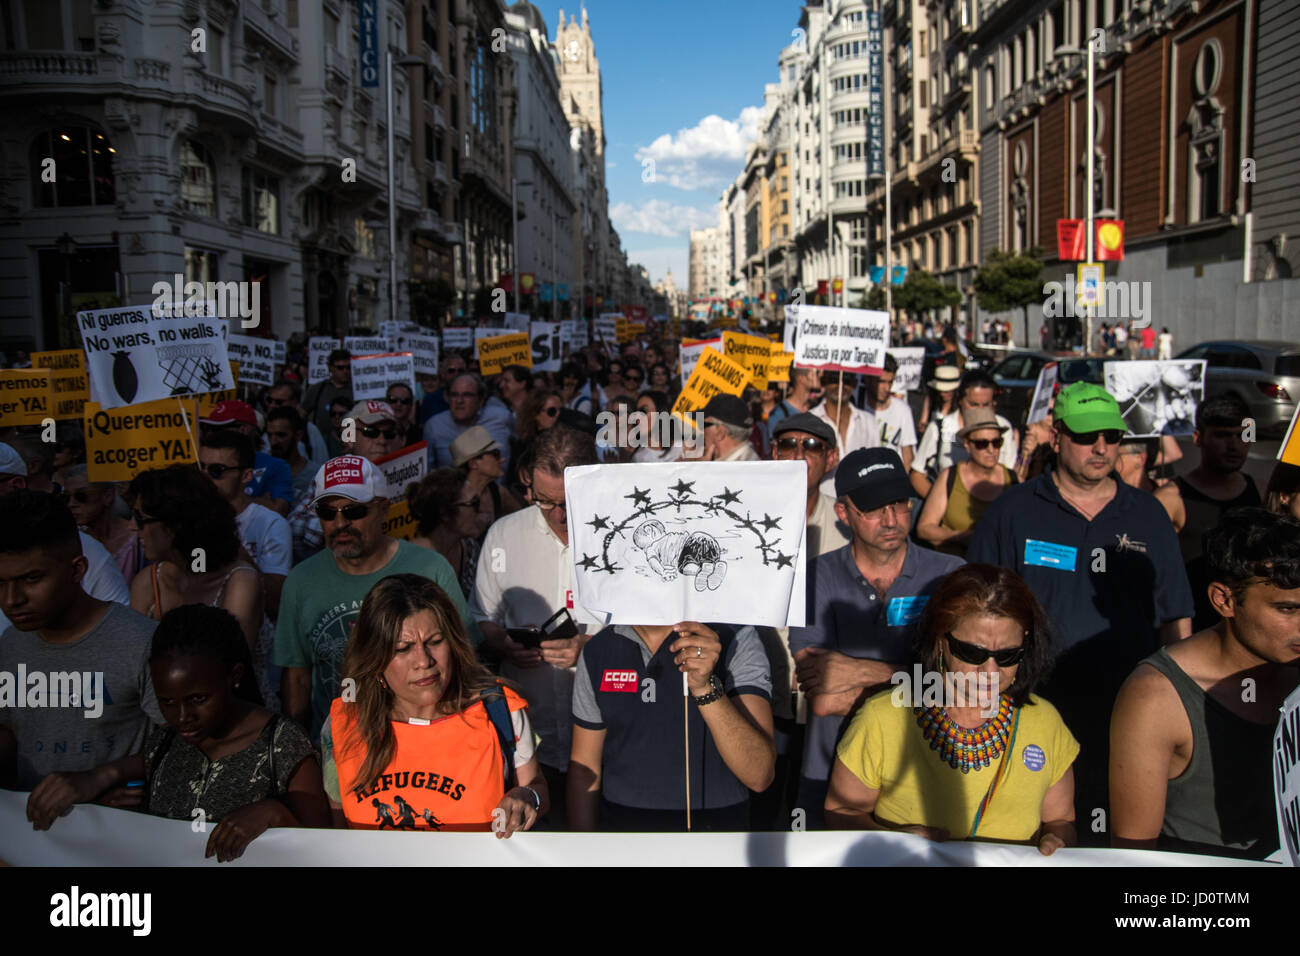 Madrid, Spain. 17th June, 2017. People demanding to welcome refugees during a demonstration against immigration - Stock Image